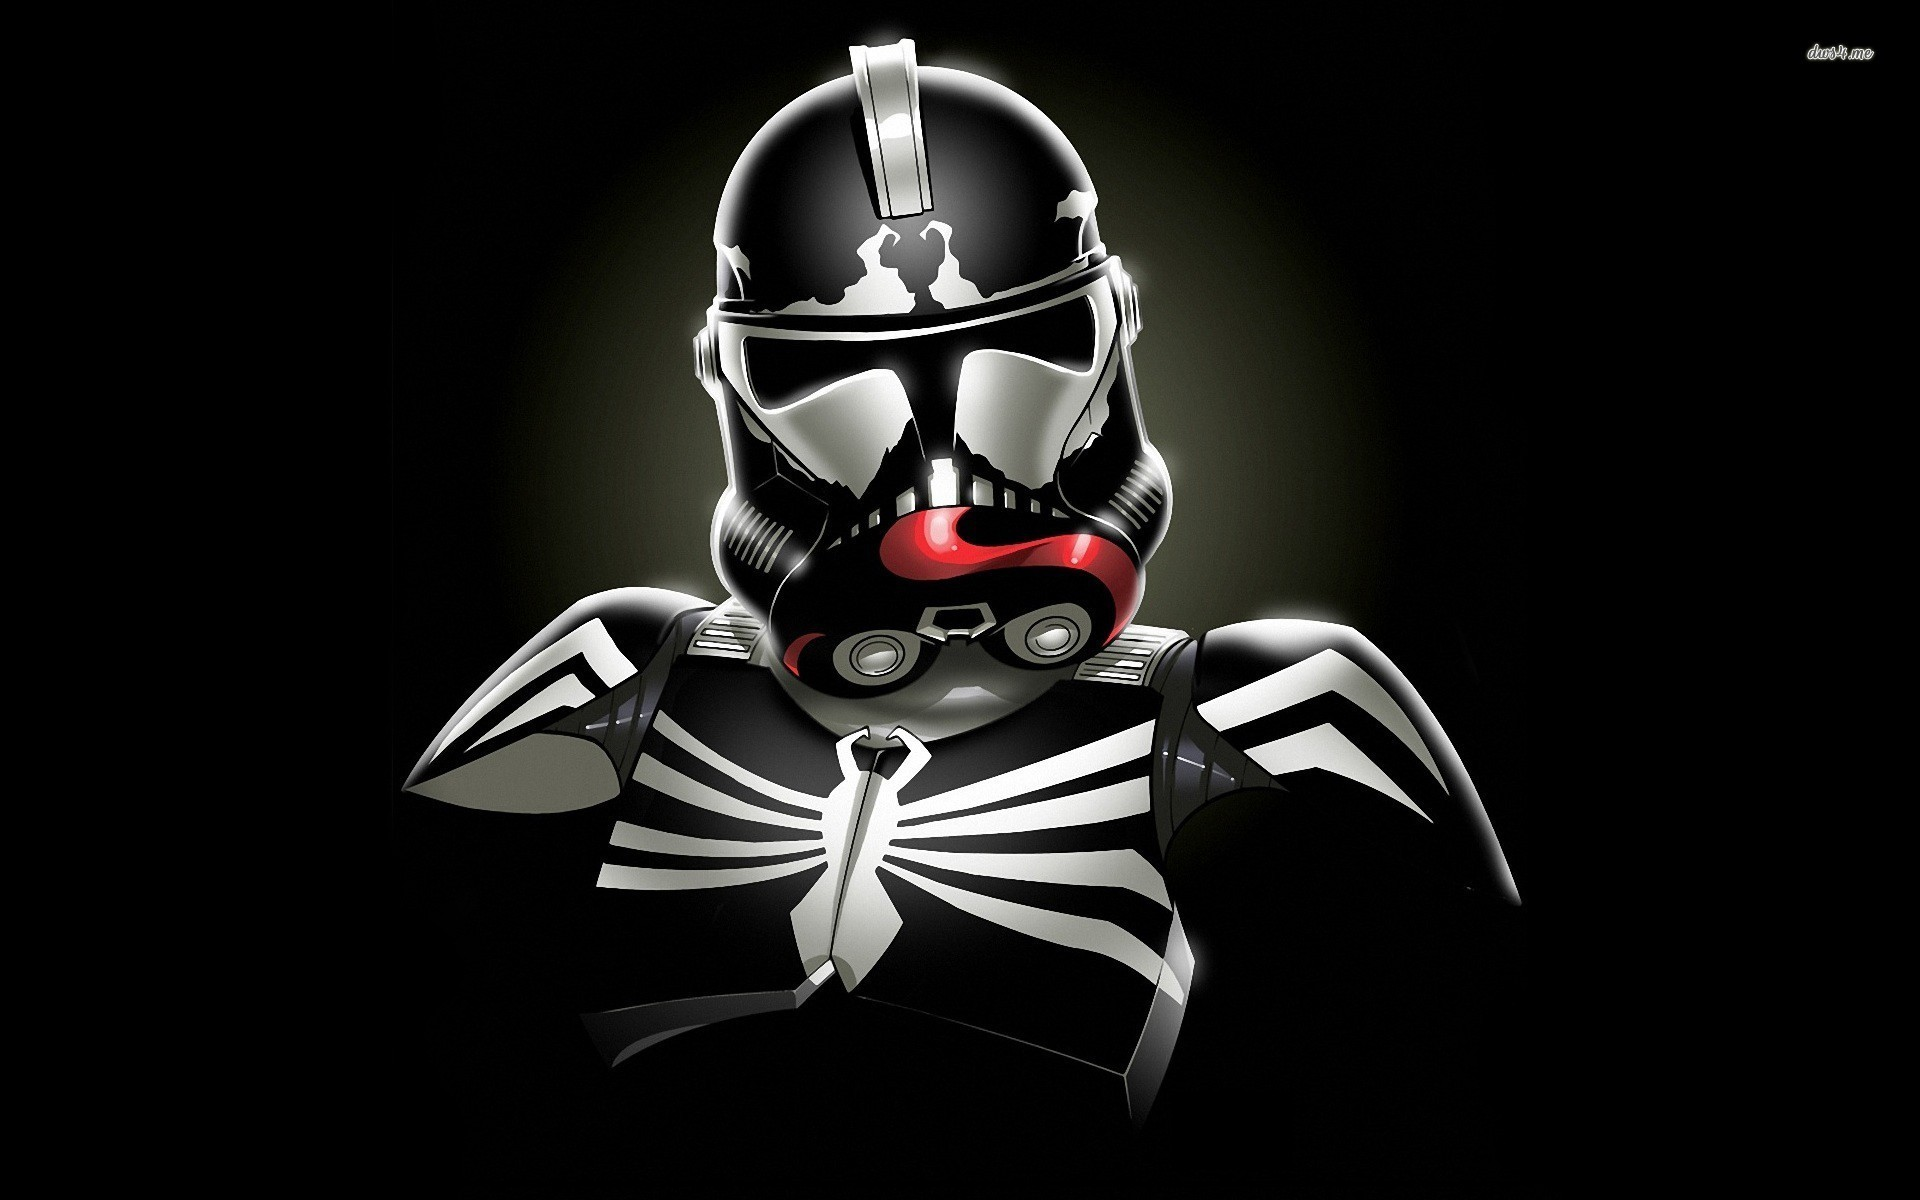 1920x1200 56 Spider-Man Stormtrooper Trooper Wallpapers - Full HD wallpaper search -  page 2